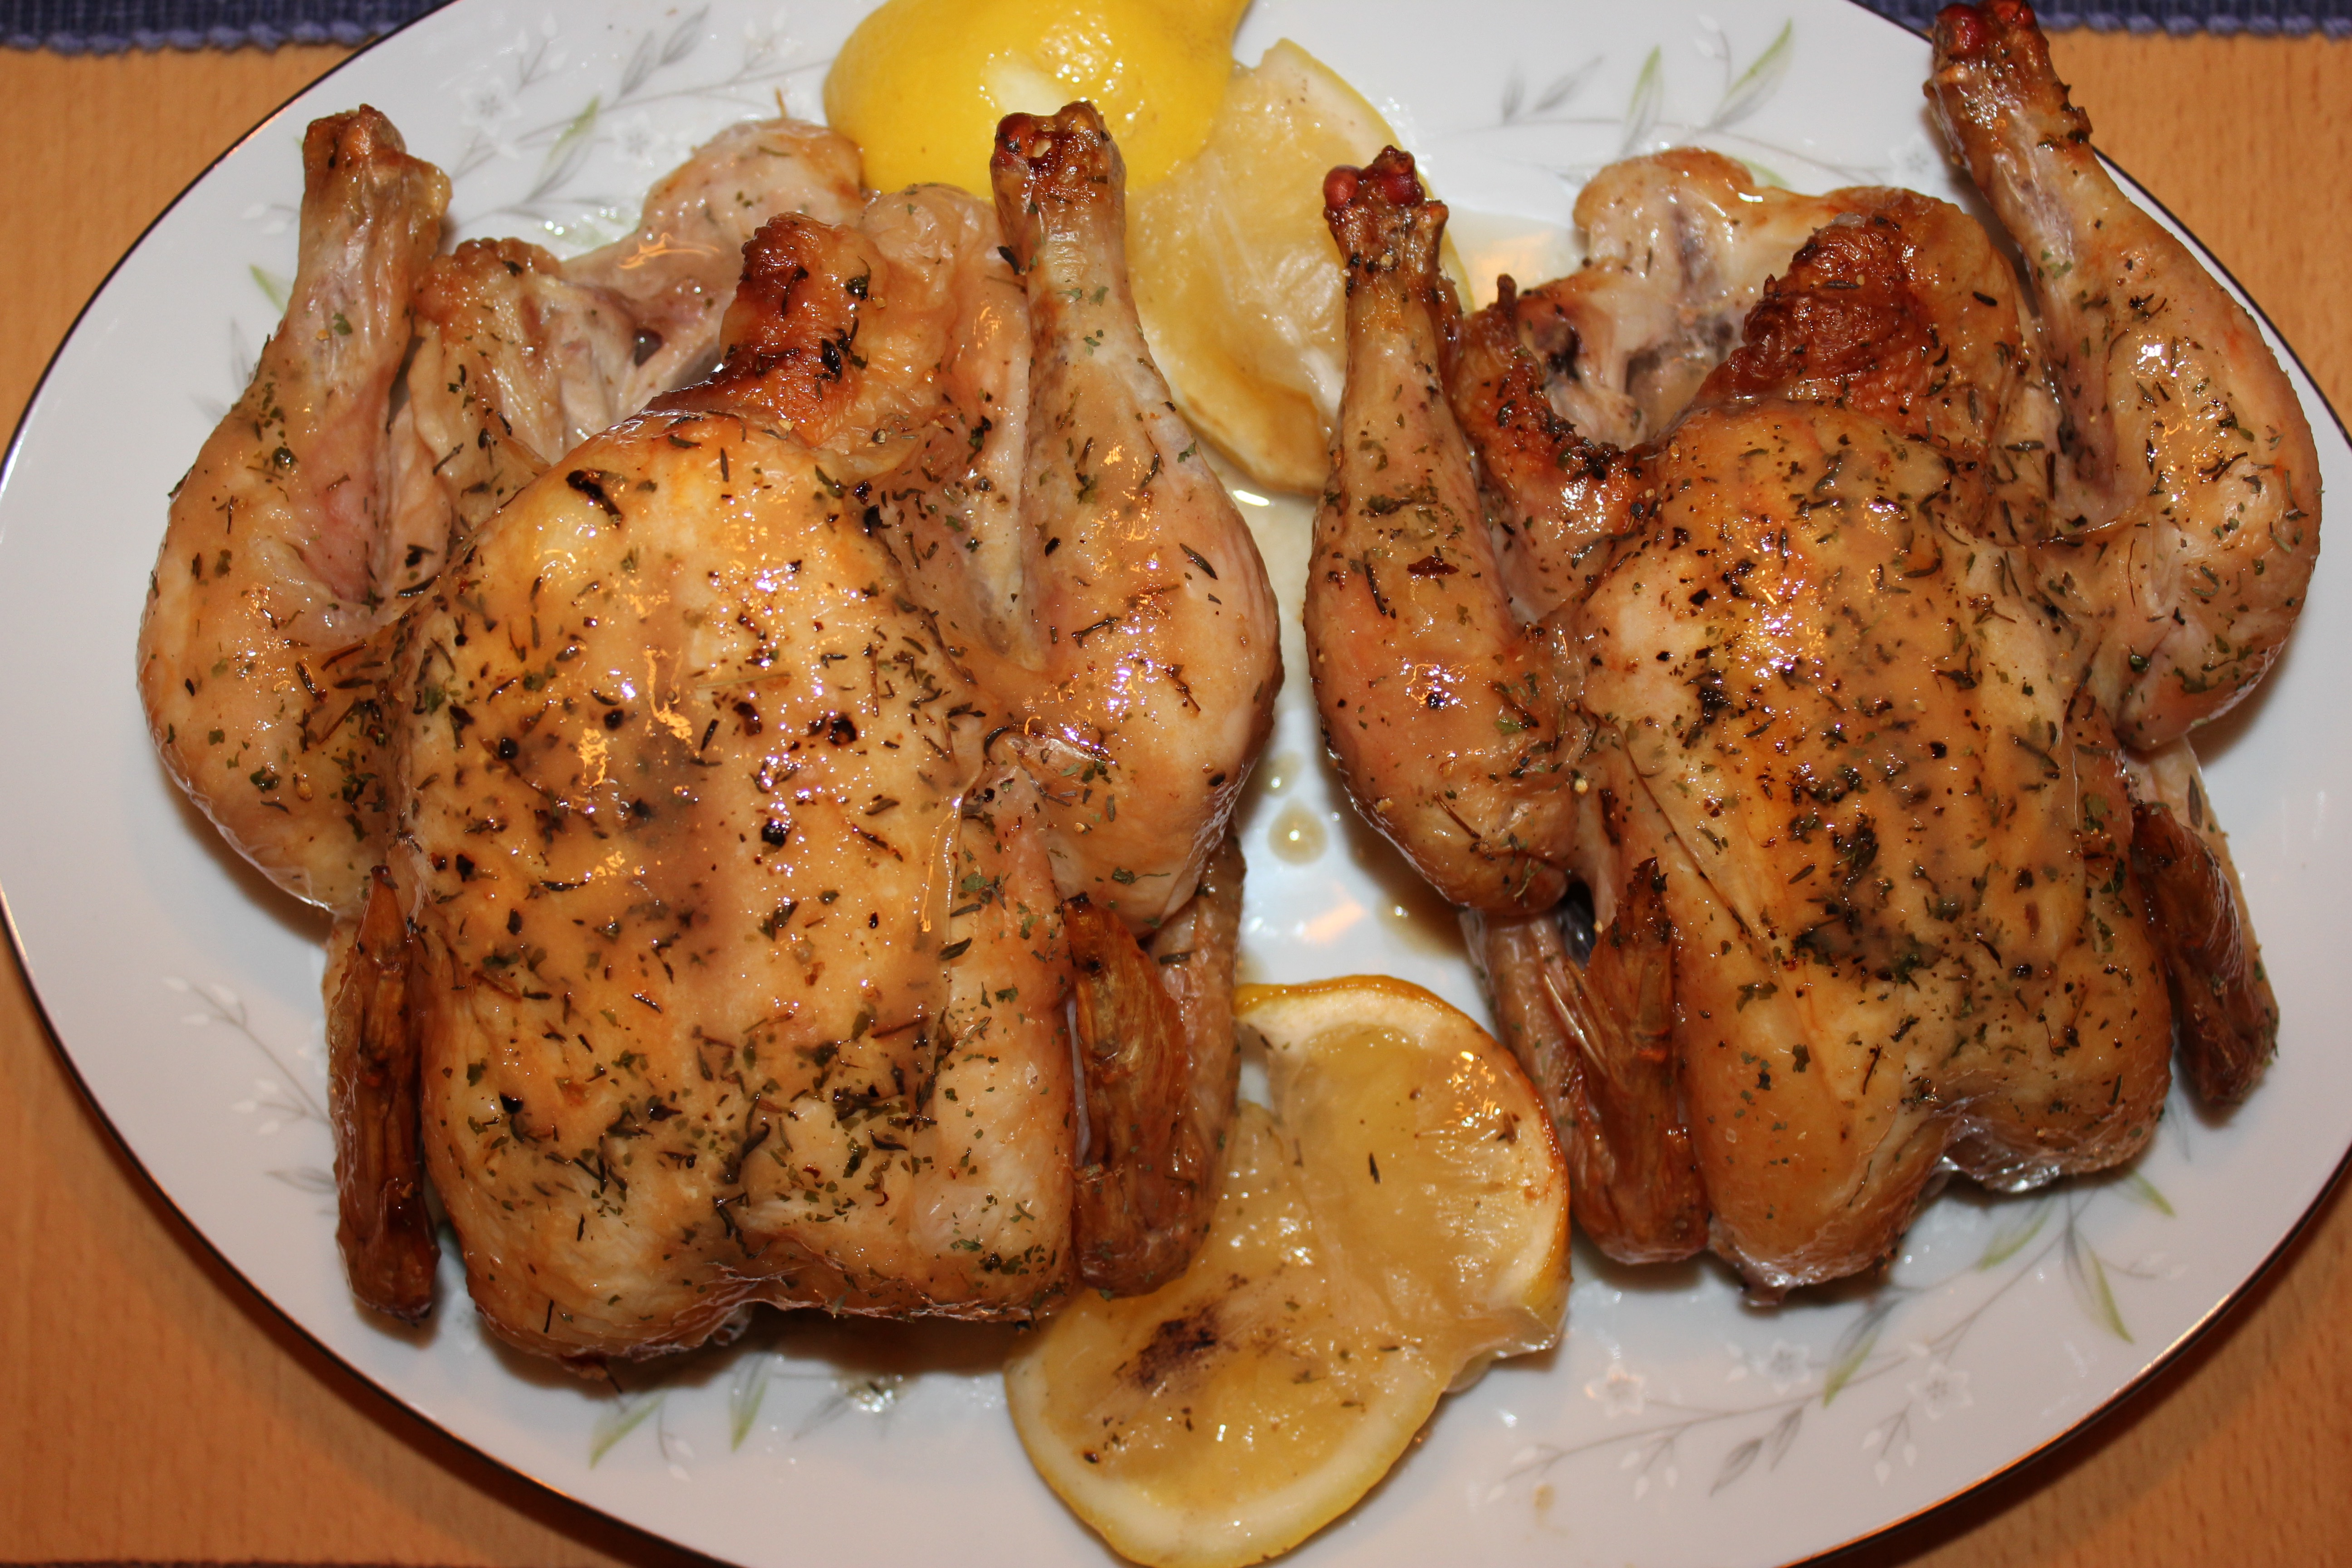 Two Cornish game hens, side by side, one a white china plate, with herbs on top and two lemon halves.